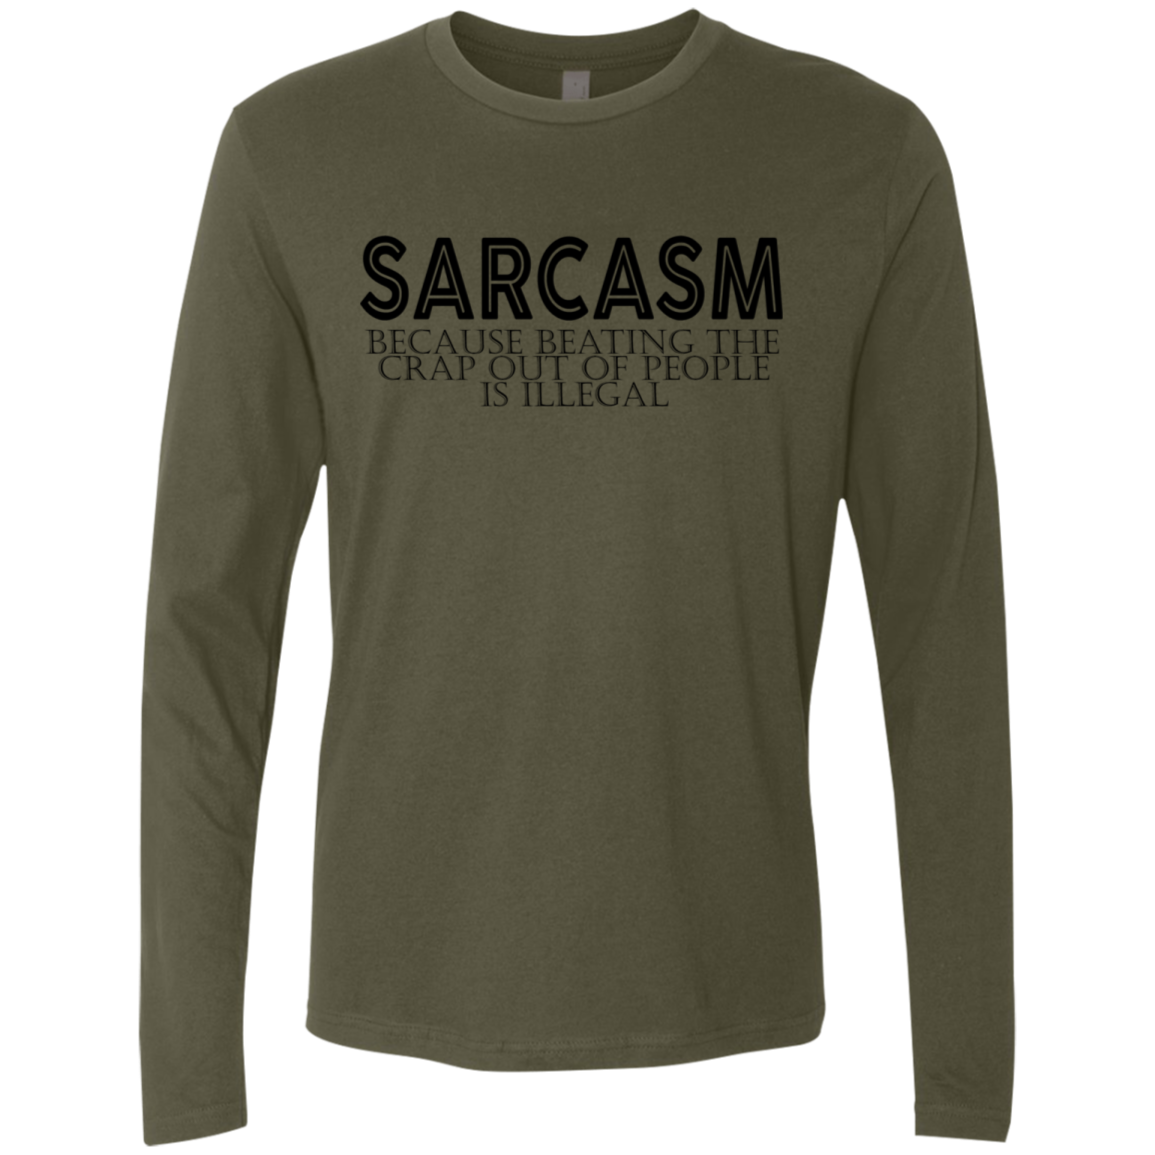 Sarcasm Because Beating The Crap Out Of People Is Illegal Men's Long Sleeve Tee